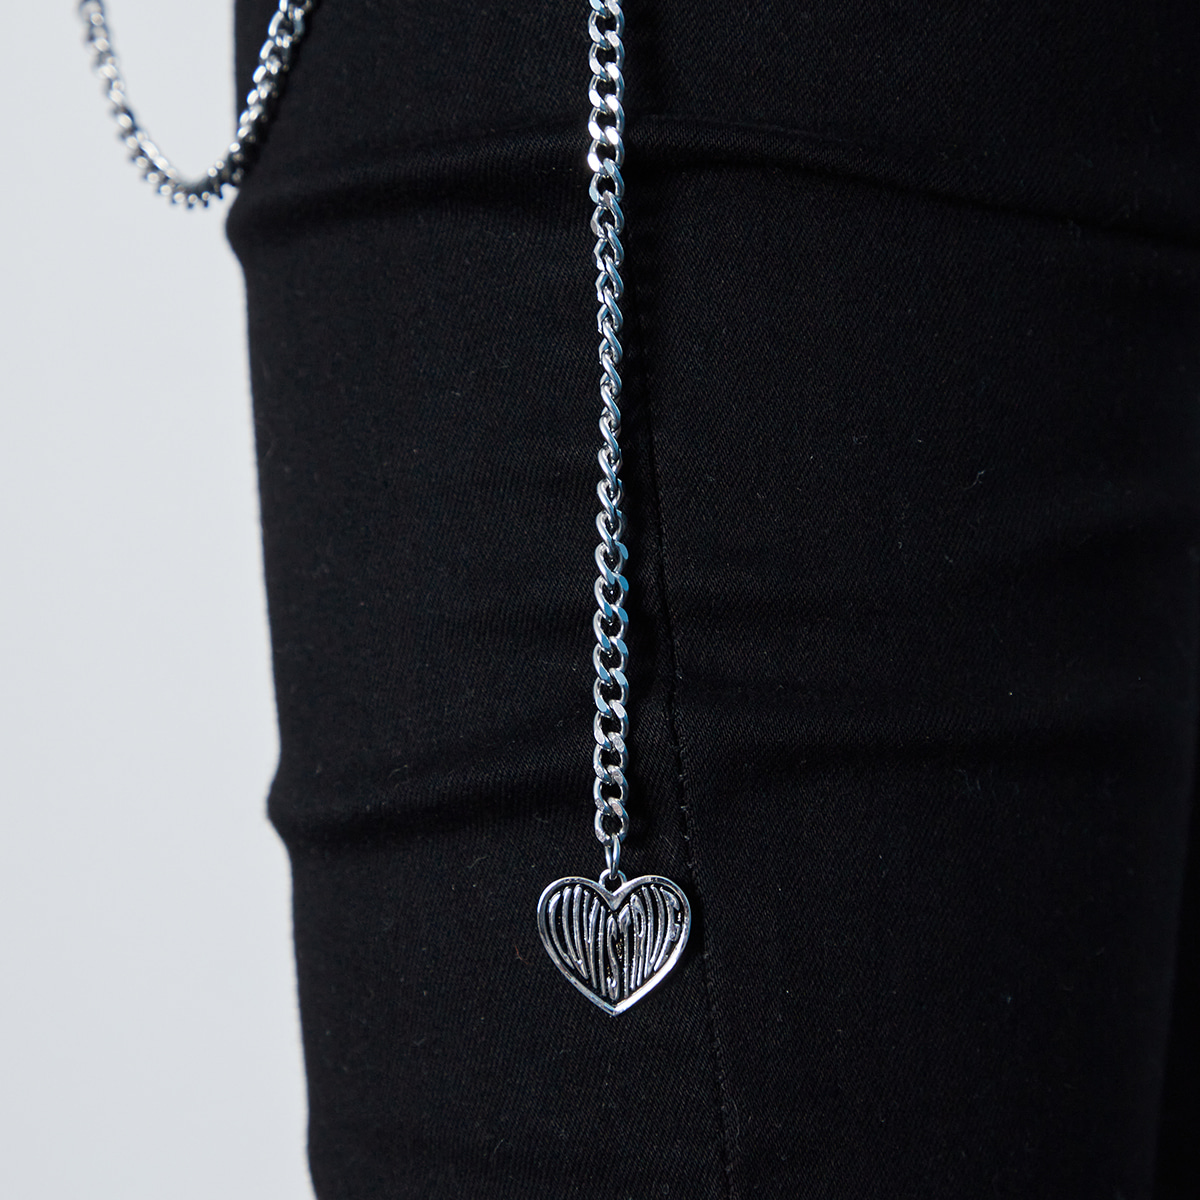 IN HEART PENDANT CHAIN (SILVER)